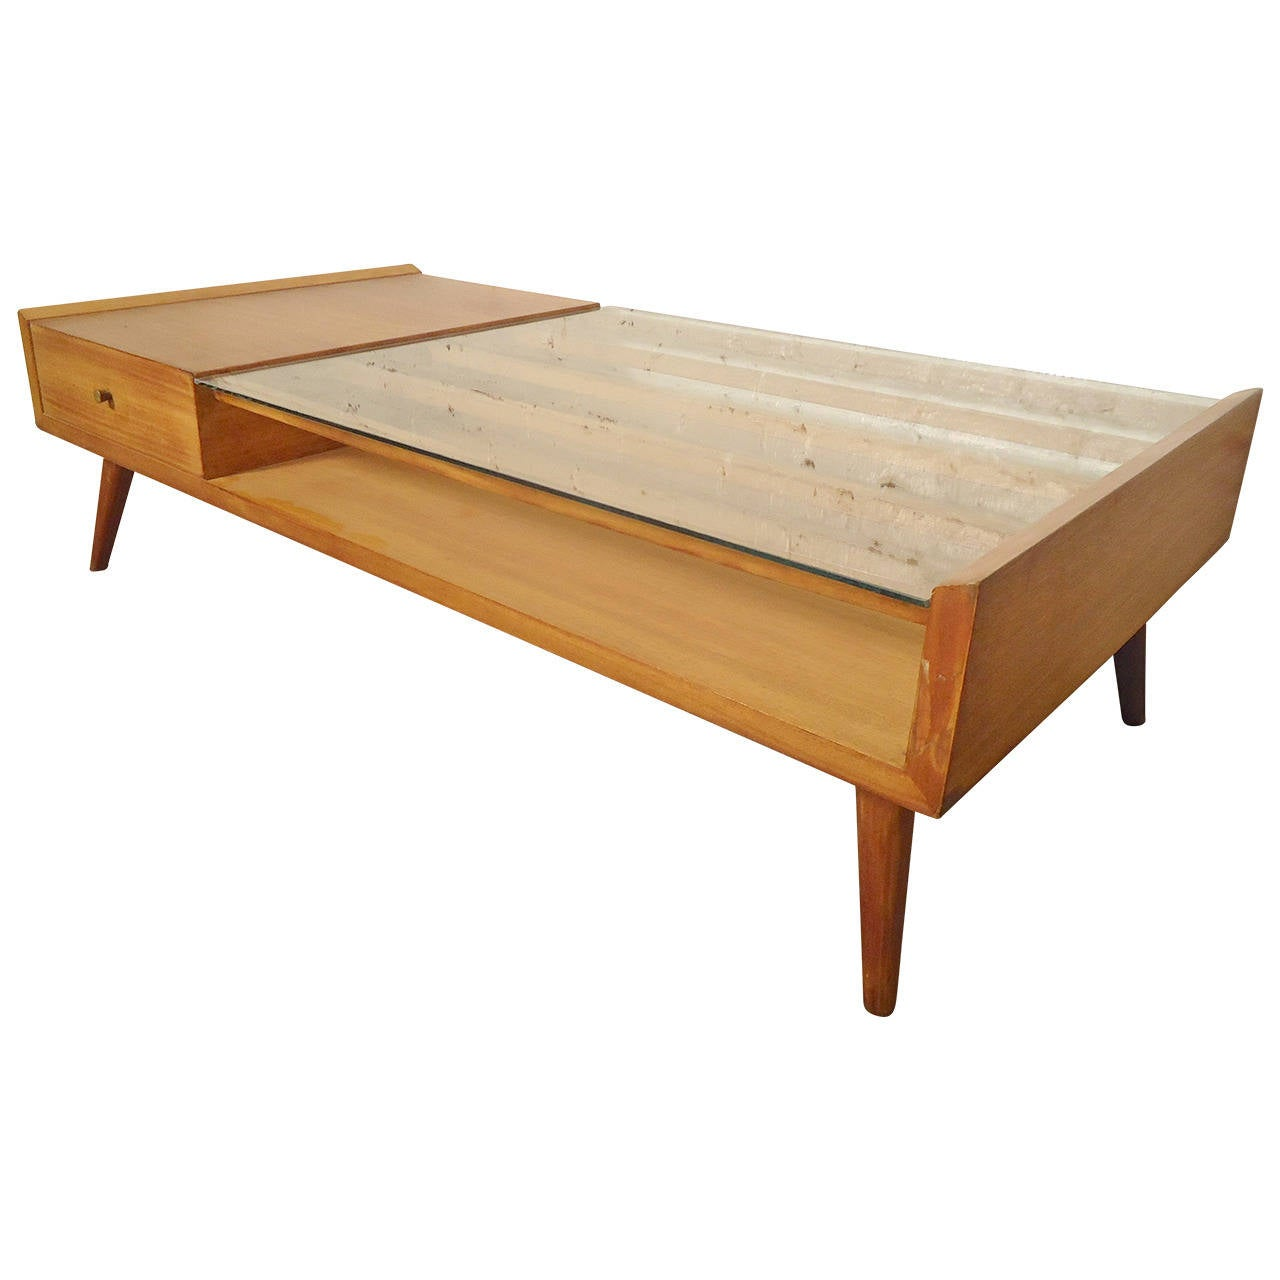 Unusual mccobb style coffee table at 1stdibs for Coffee tables quirky